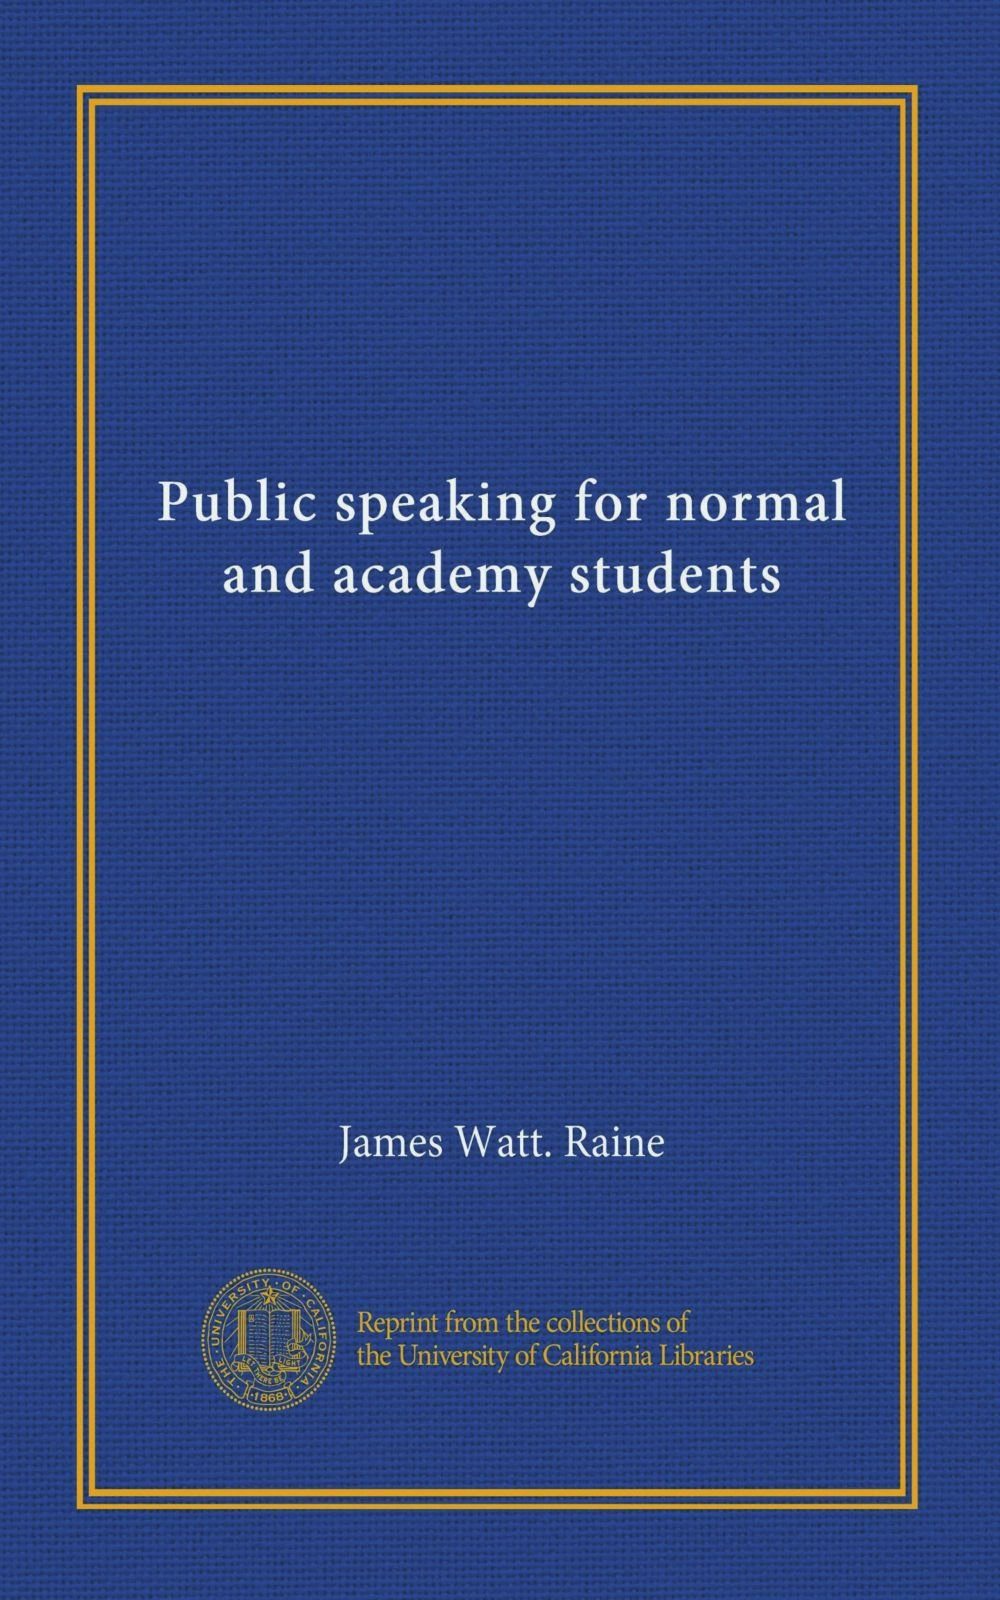 Download Public speaking for normal and academy students PDF